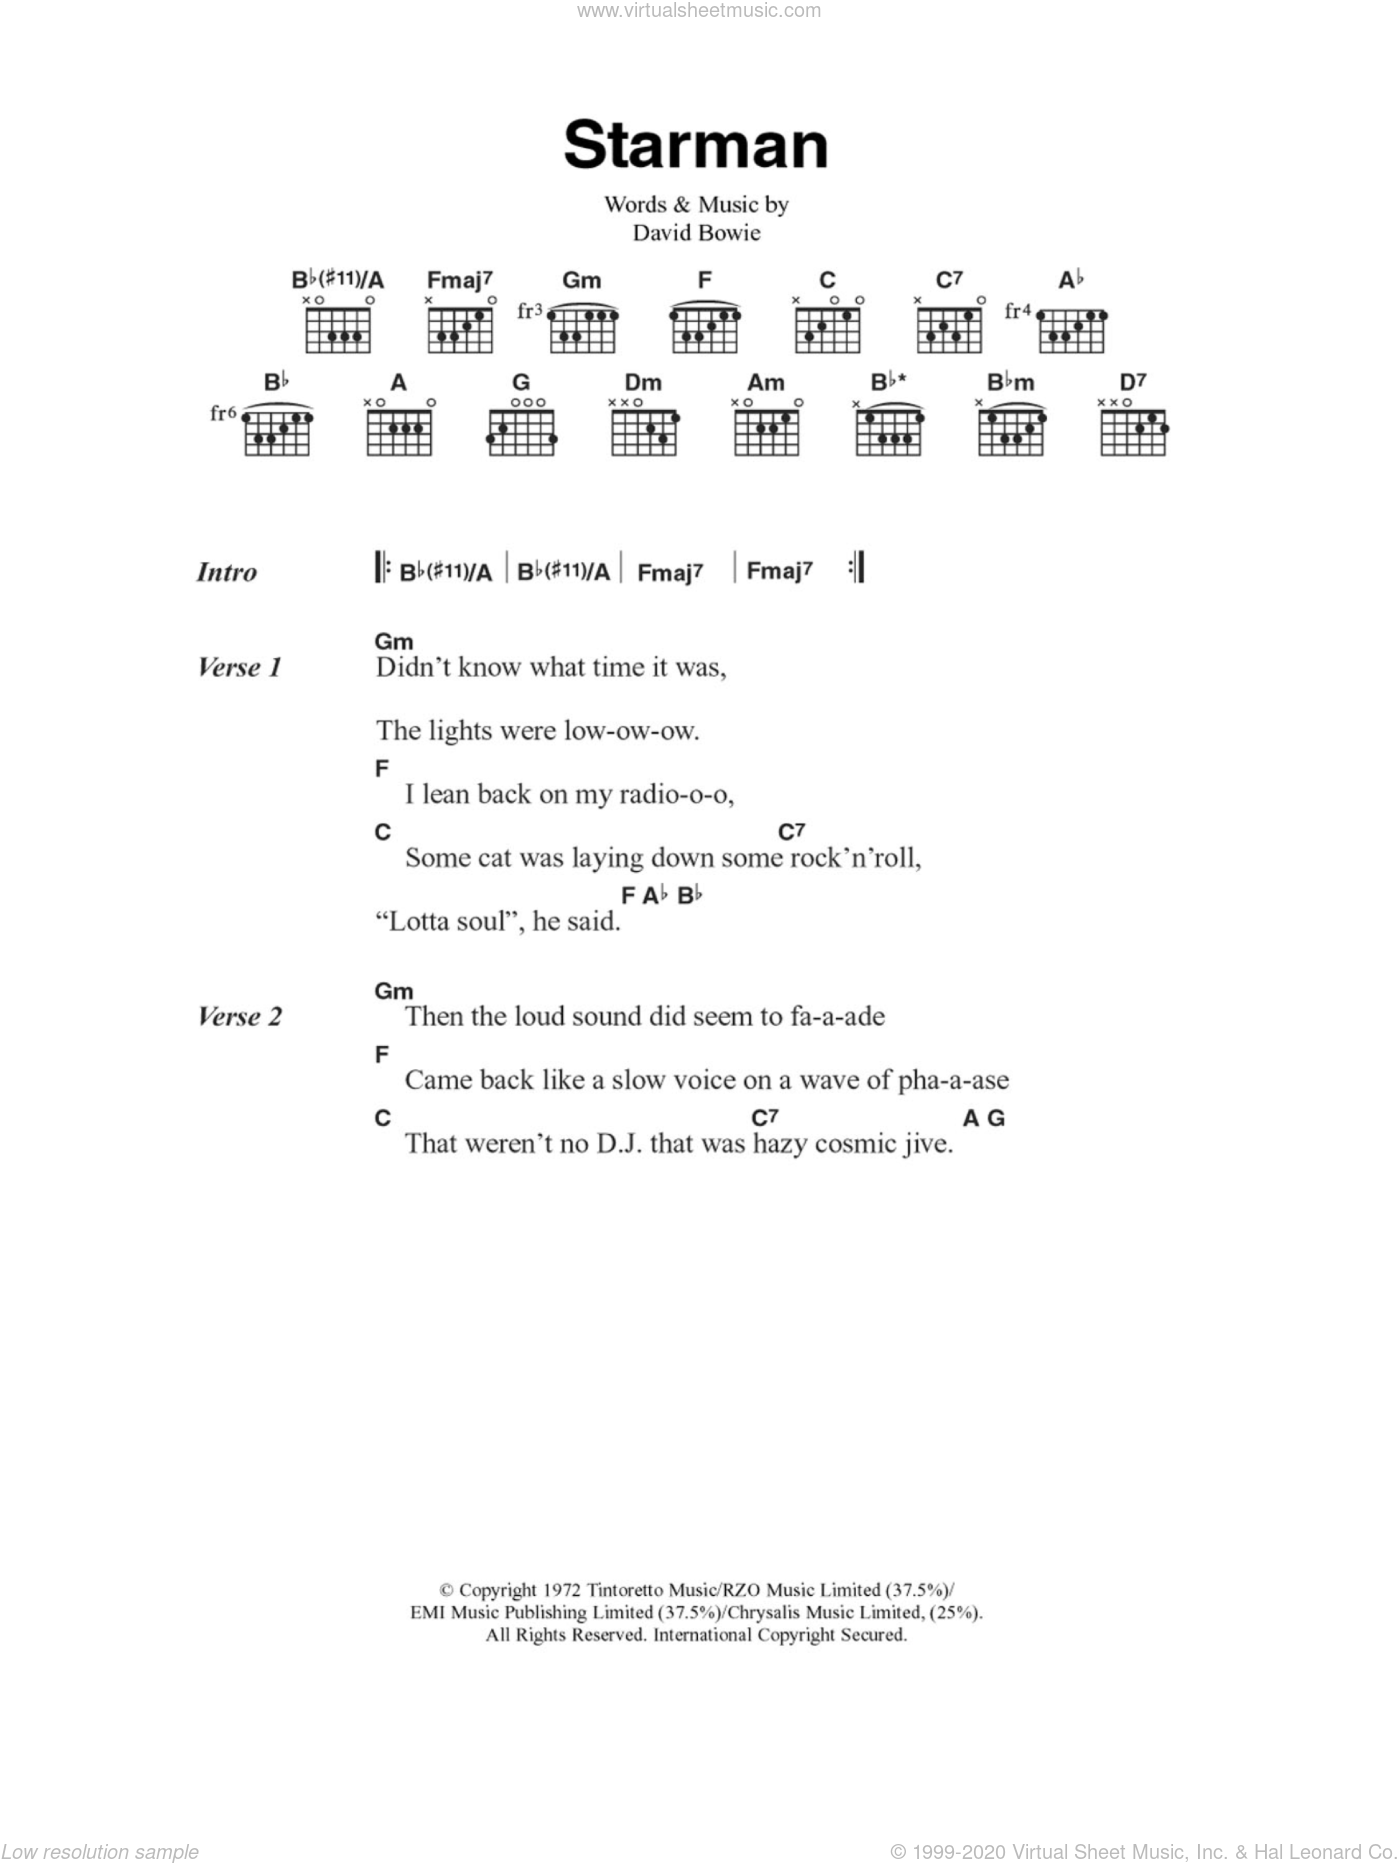 Starman sheet music for guitar (chords) by David Bowie